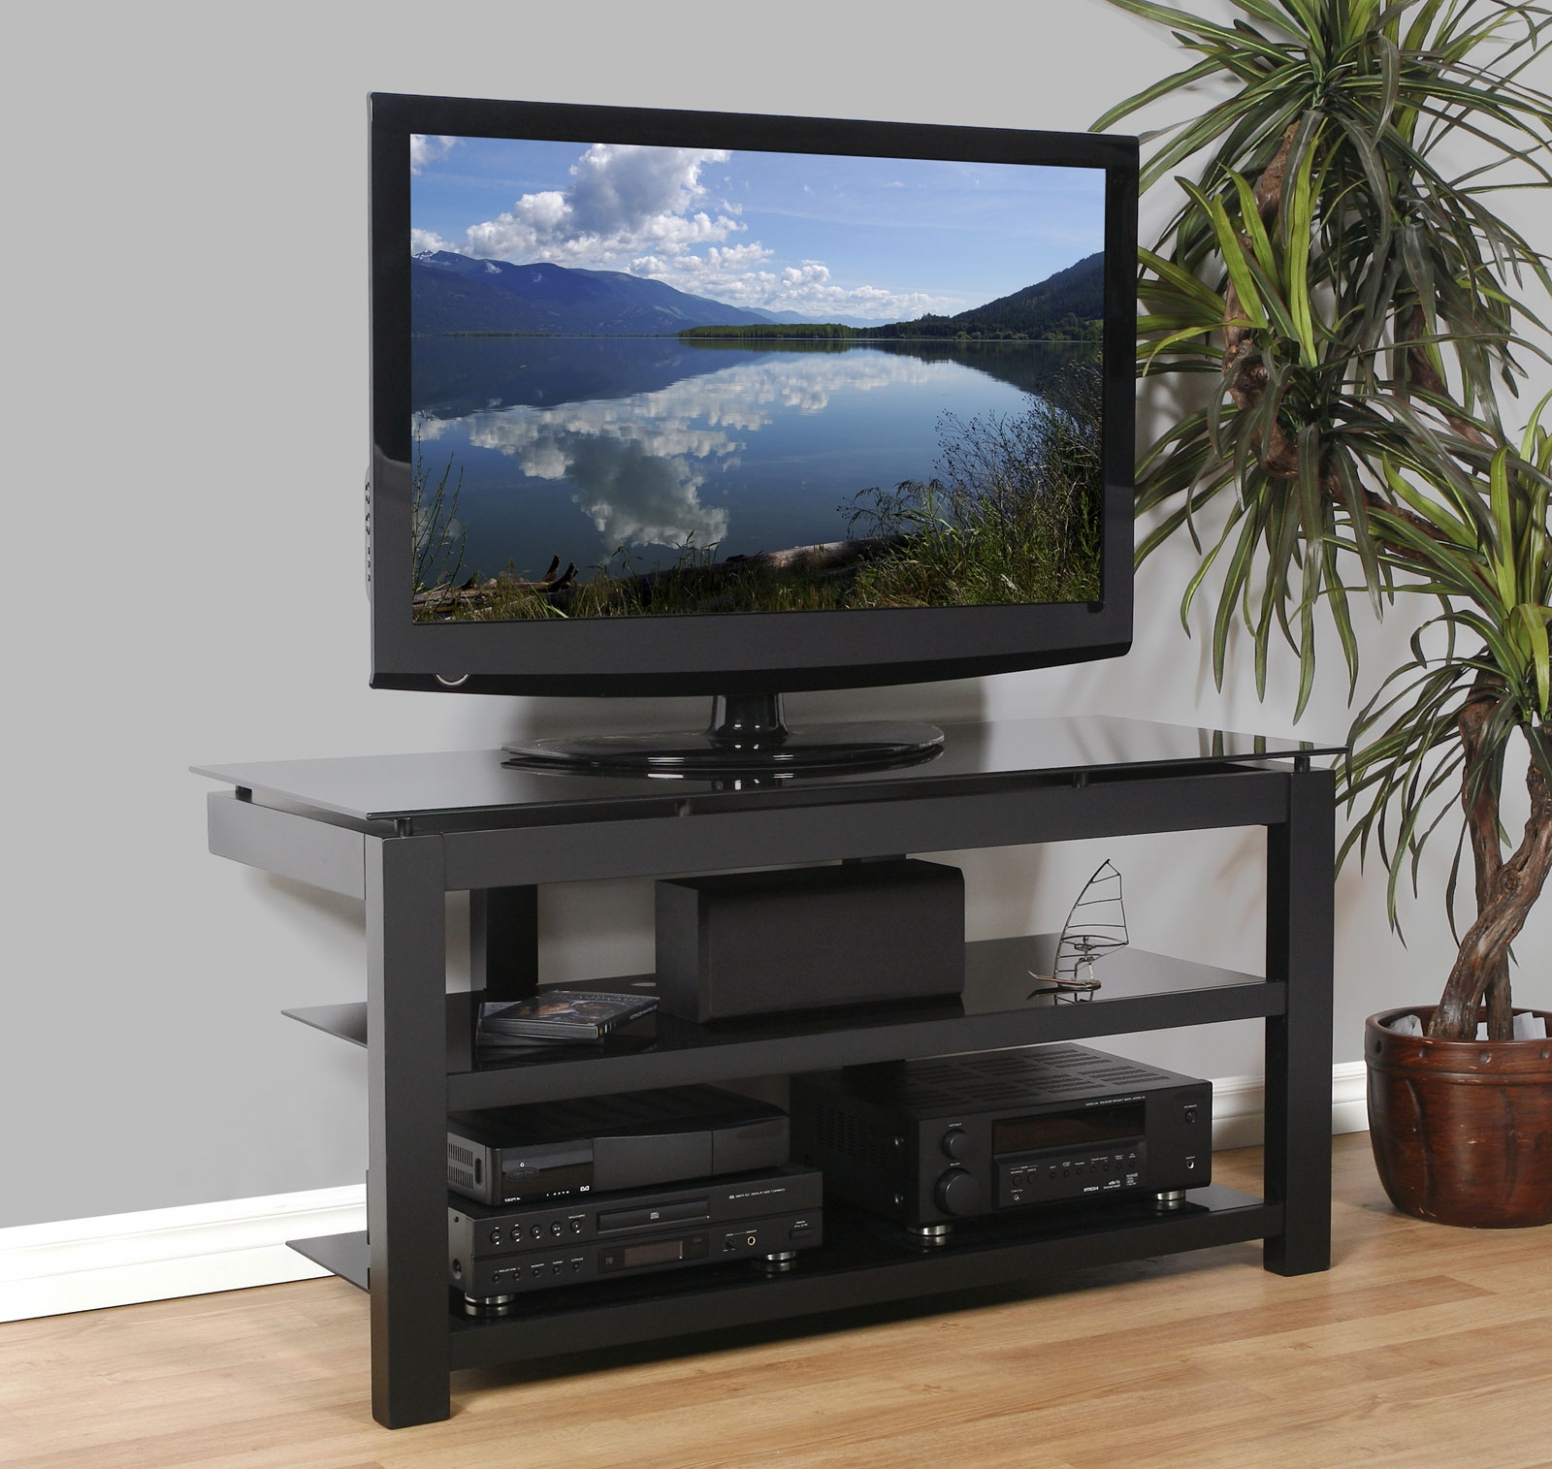 Wooden Tv Stands For 50 Inch Tv With Regard To Most Current Natural Wood Tv Stand — Rabbssteak House (View 10 of 20)